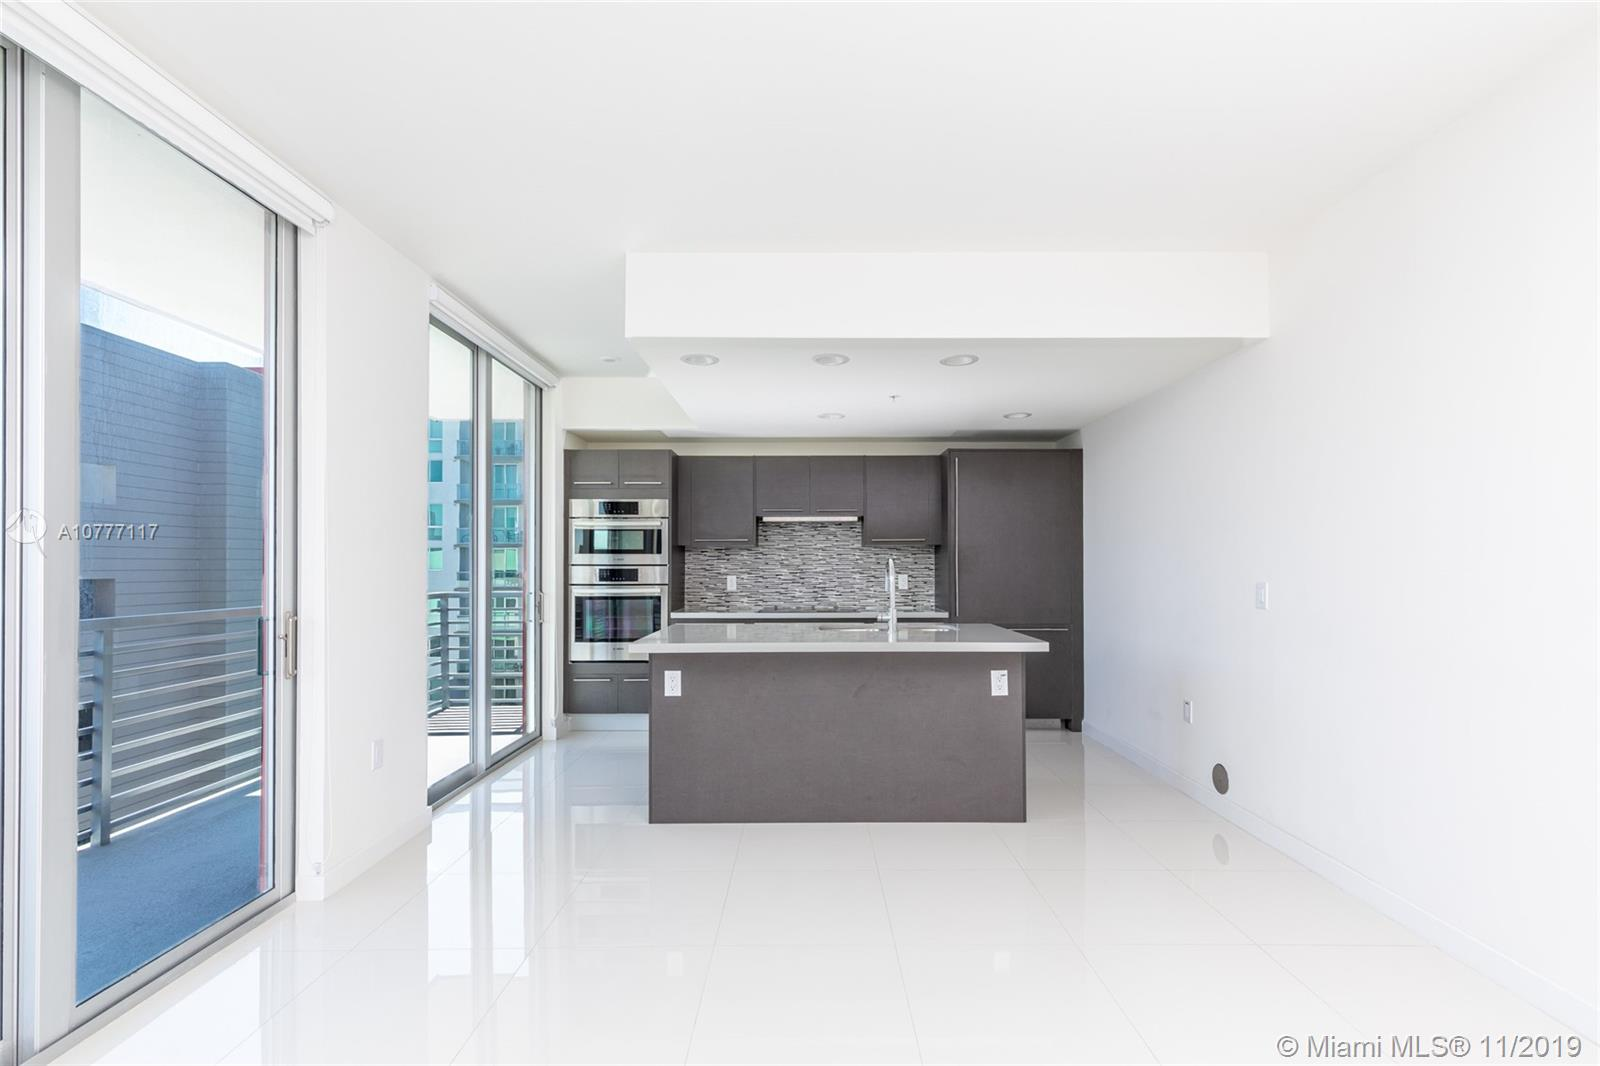 7875 NW 107th Ave #504 For Sale A10777117, FL